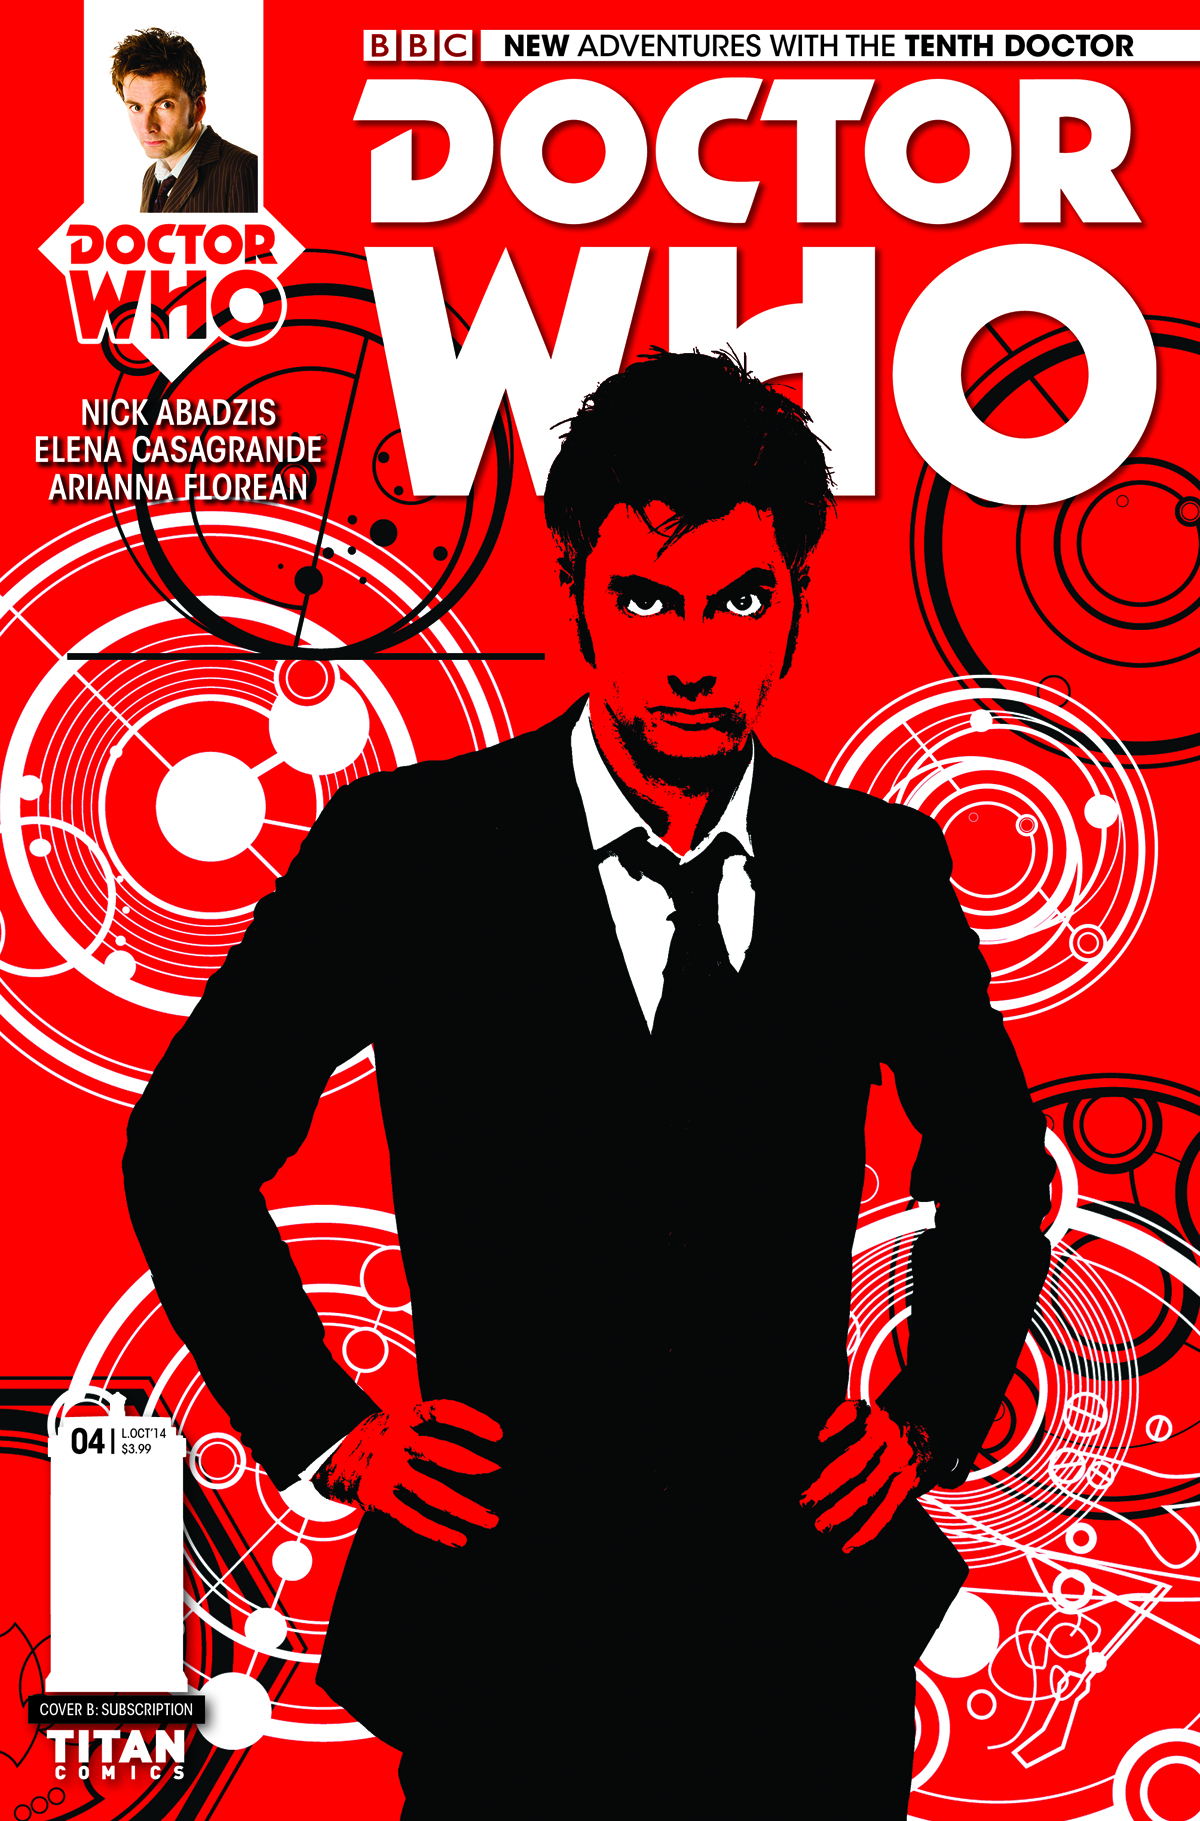 DOCTOR WHO 10TH #4 SUBSCRIPTION PHOTO